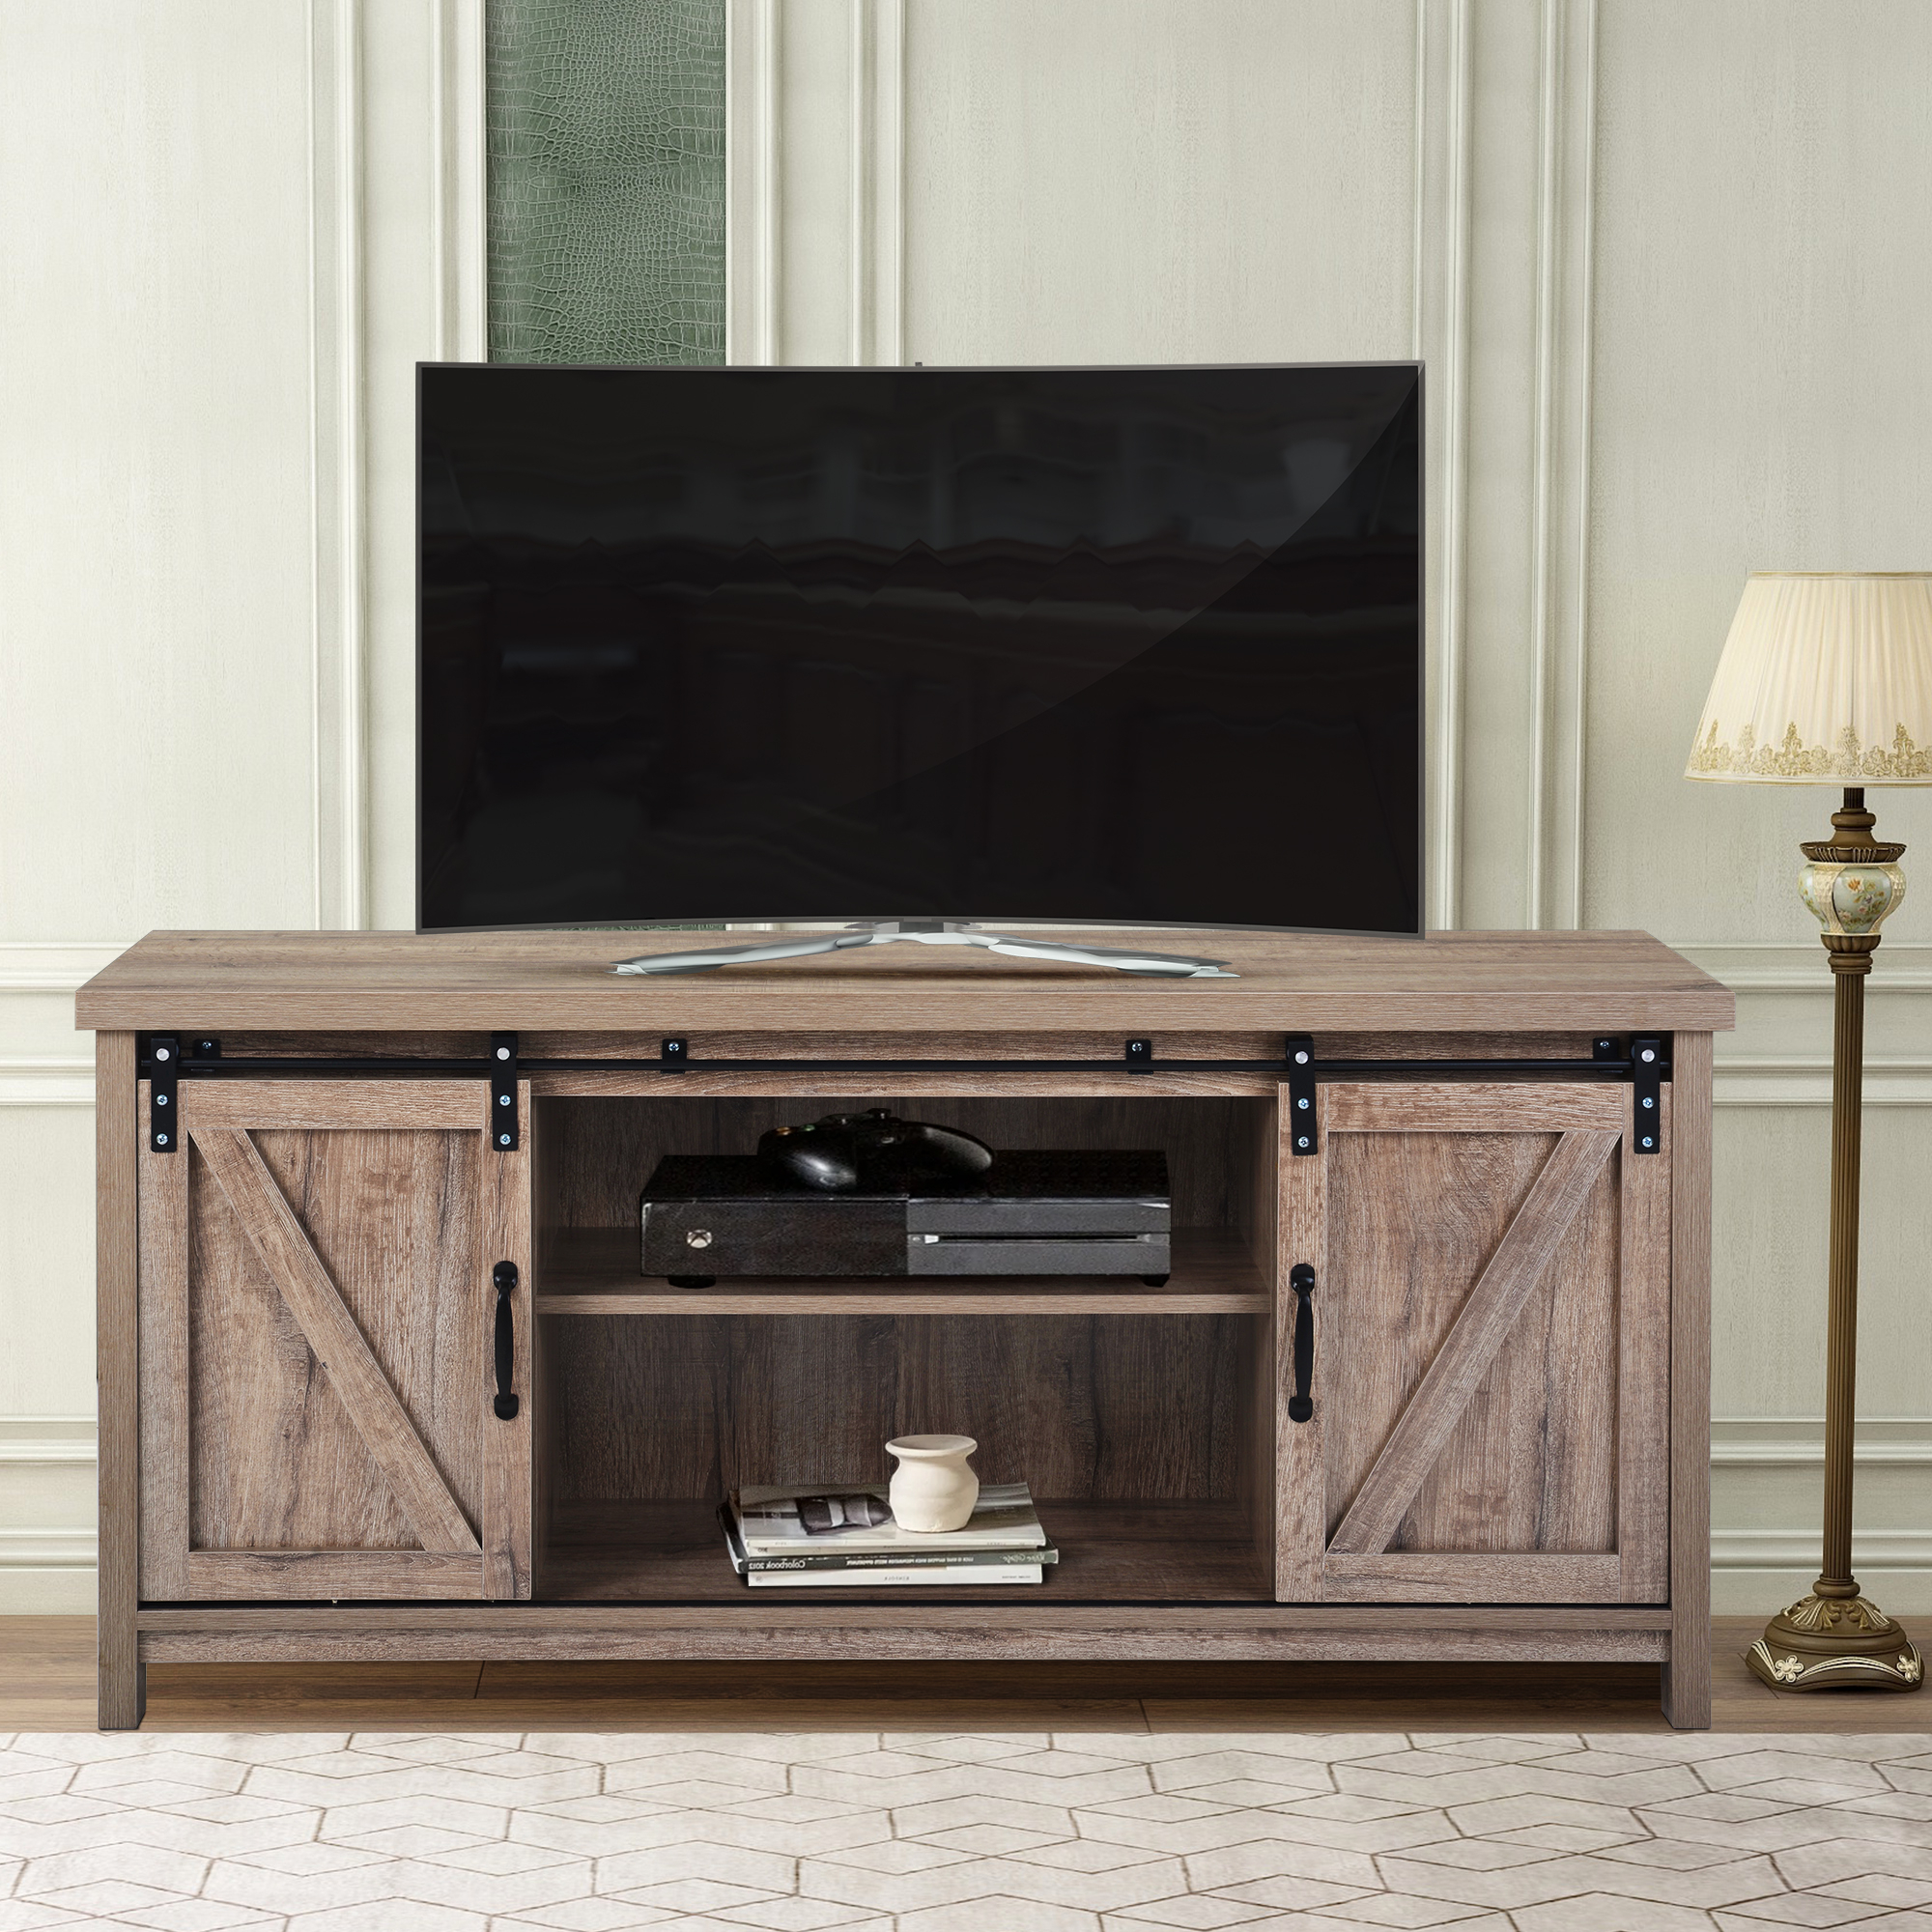 Wood Tv Stand, Modern Corner Tv Table Stands, Rustic Style With Regard To Modern 2 Glass Door Corner Tv Stands (View 4 of 20)